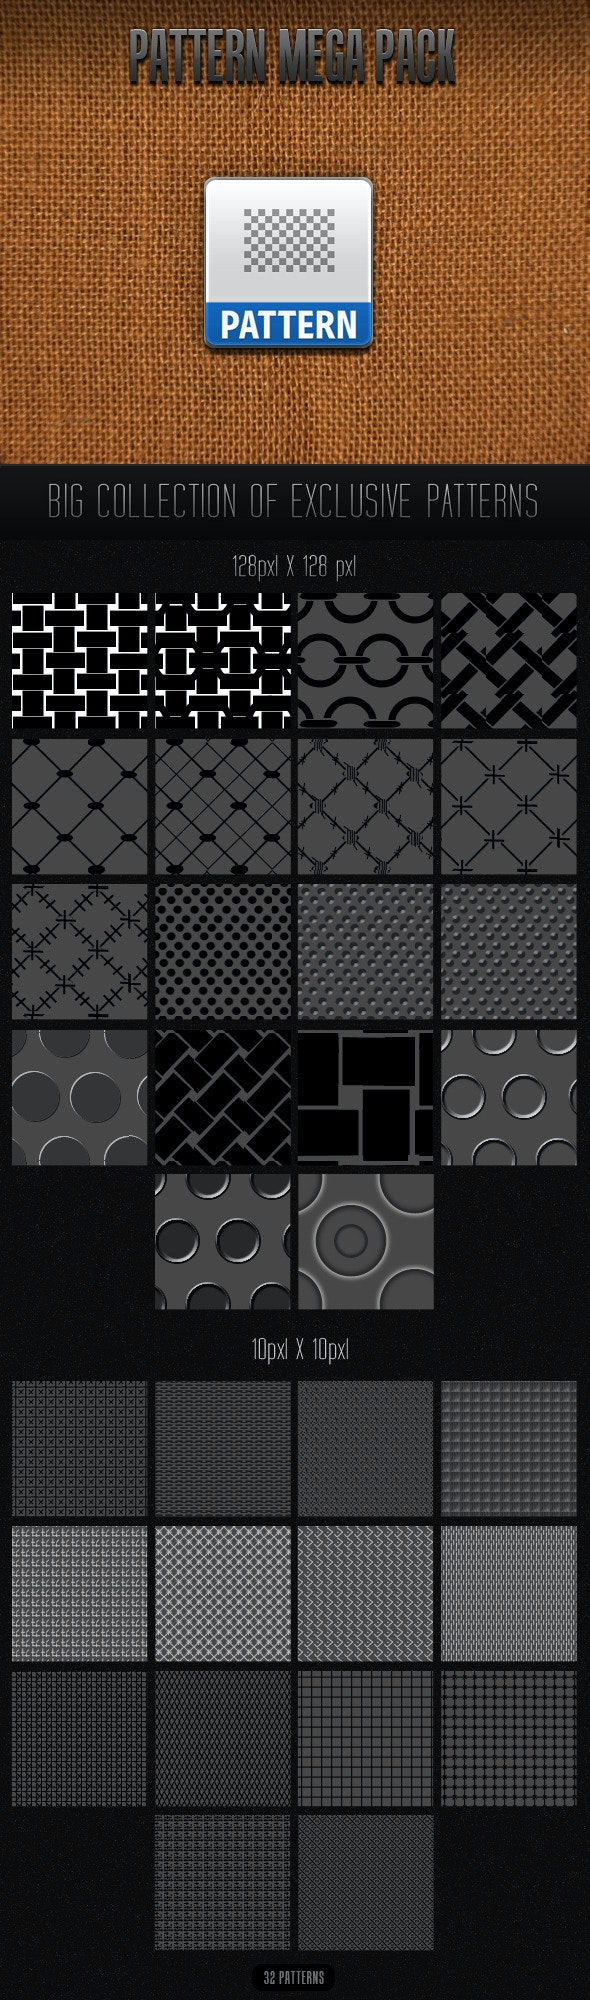 Patterns Mega Pack - Abstract Textures / Fills / Patterns